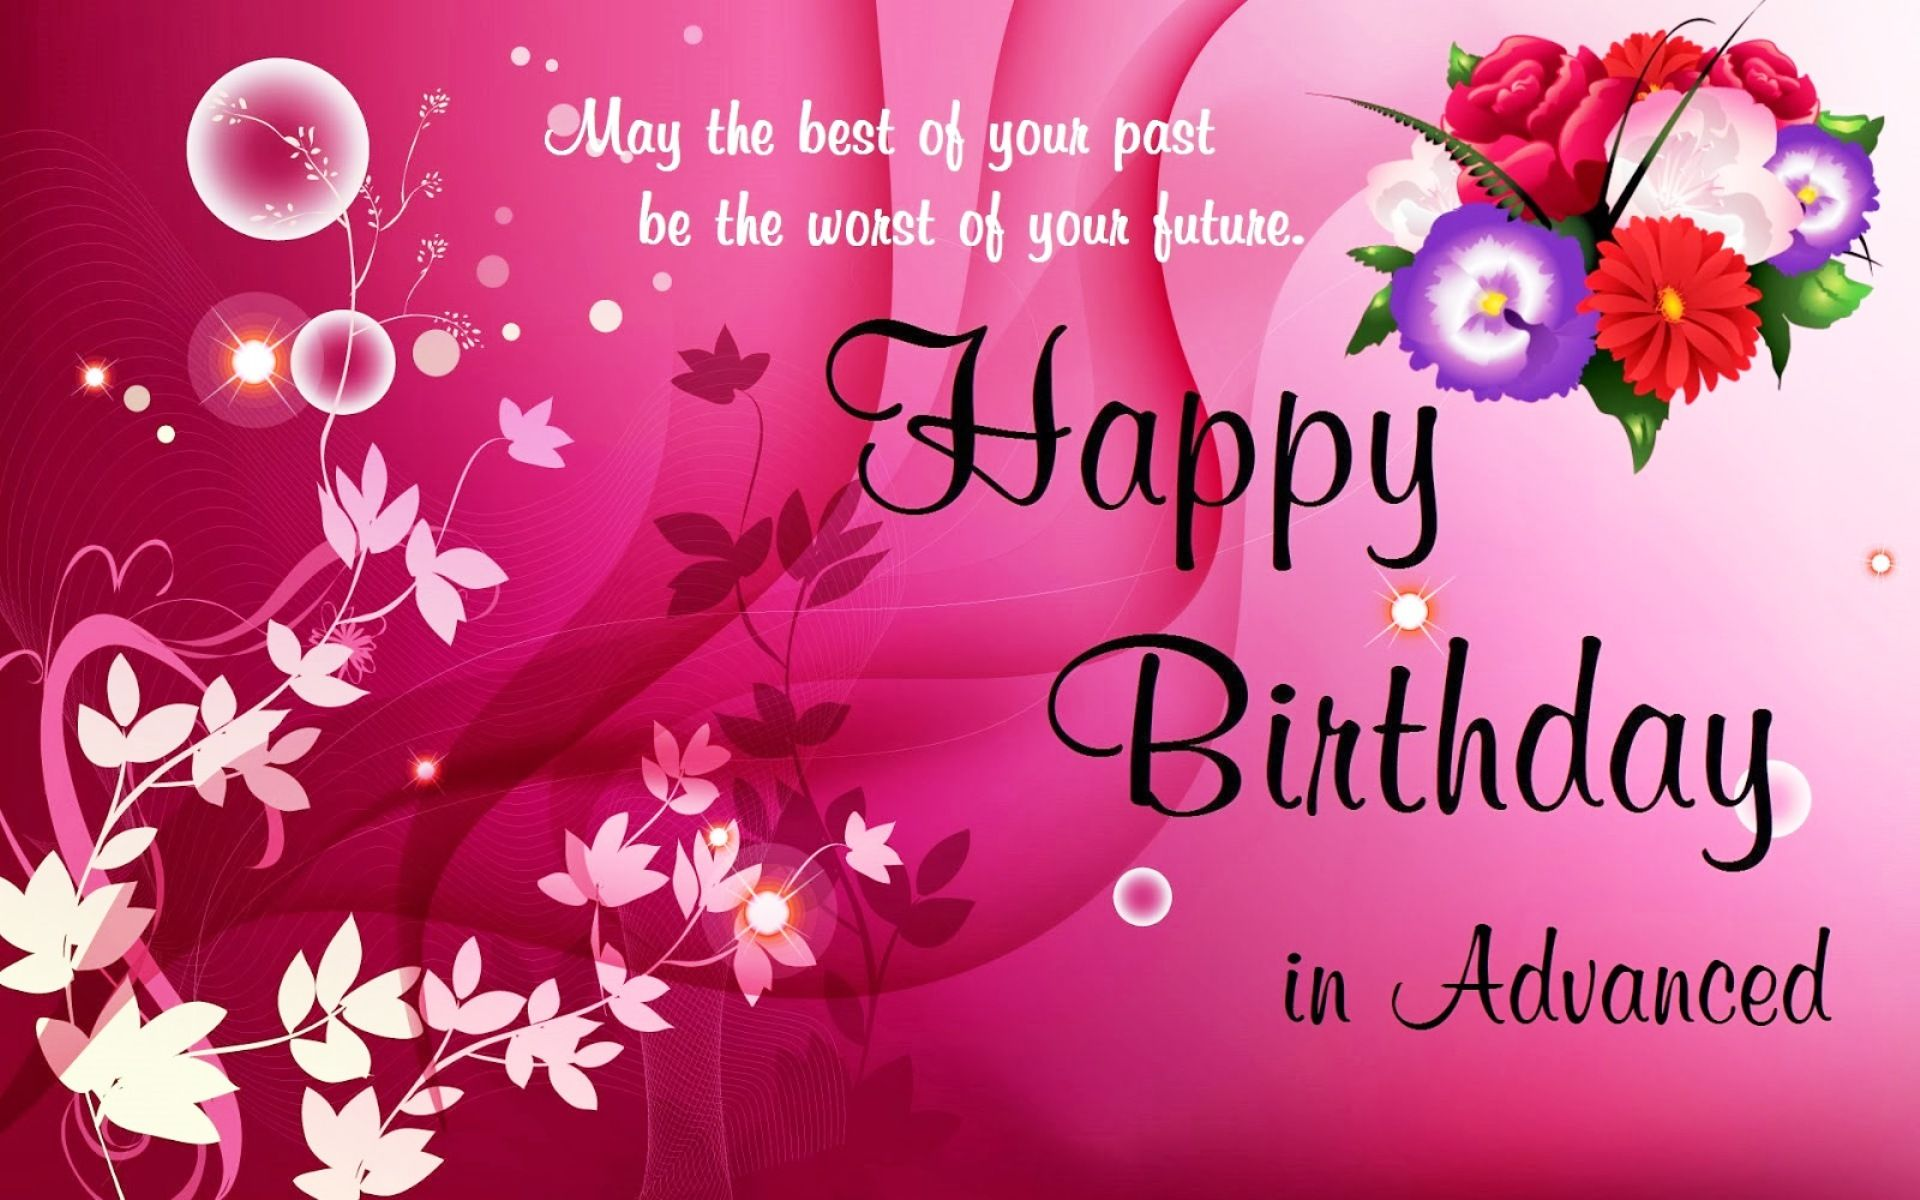 birthday images for best friend free download ; 8daa92988cb41d9c3c3e22a5ce120ff5